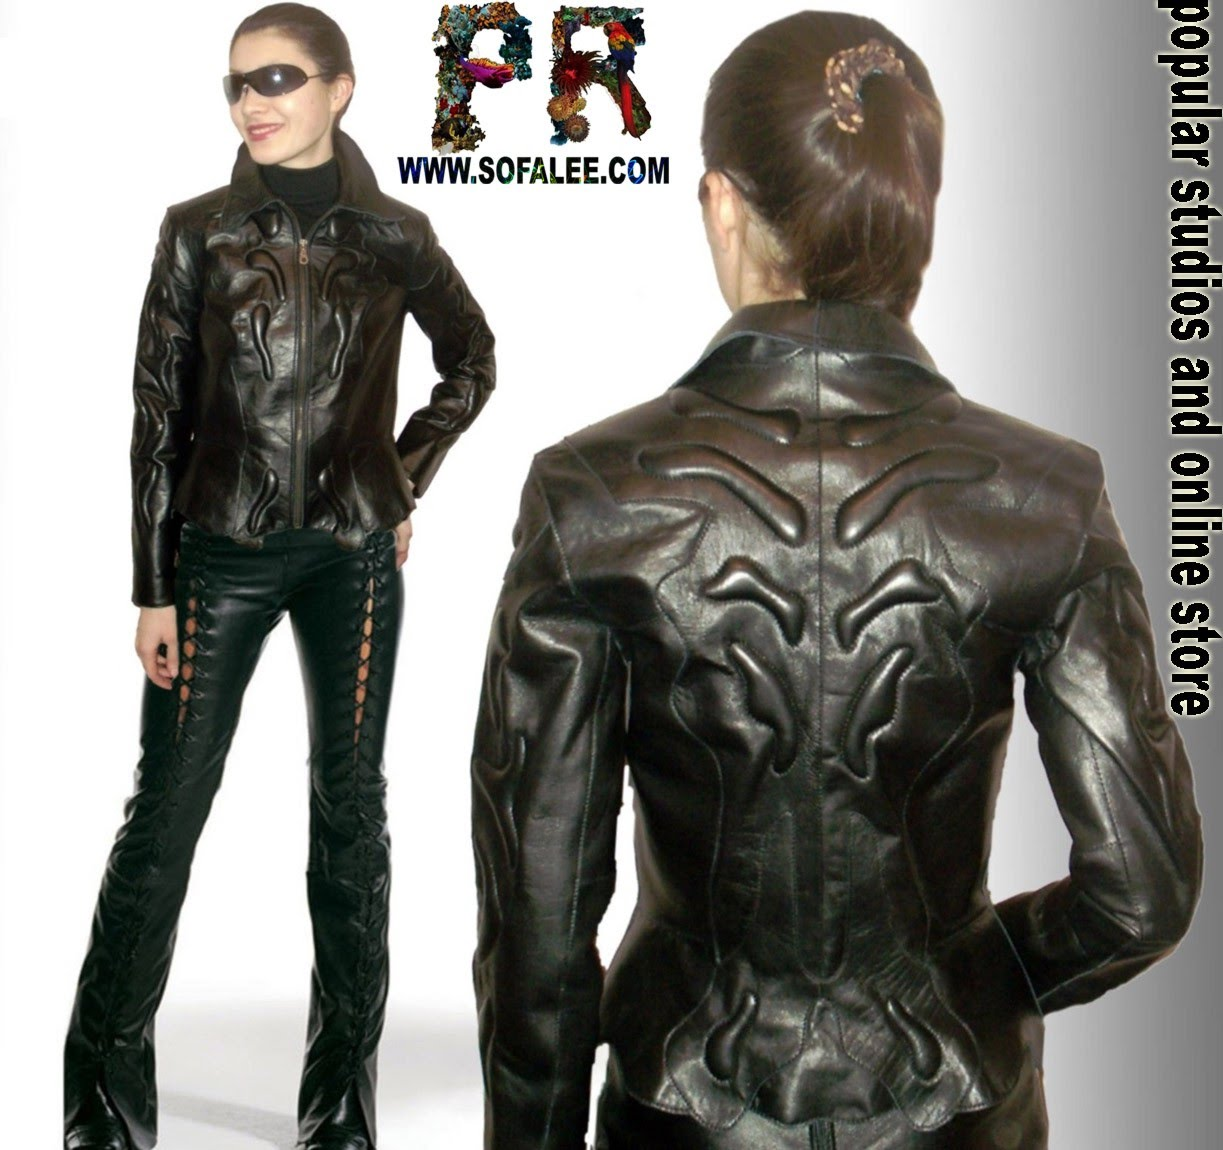 https://sites.google.com/a/sofalee.com/handmade-leather-jacets/jackets-collection/Online-store%20leather%20jackets%204.jpg?attredirects=0